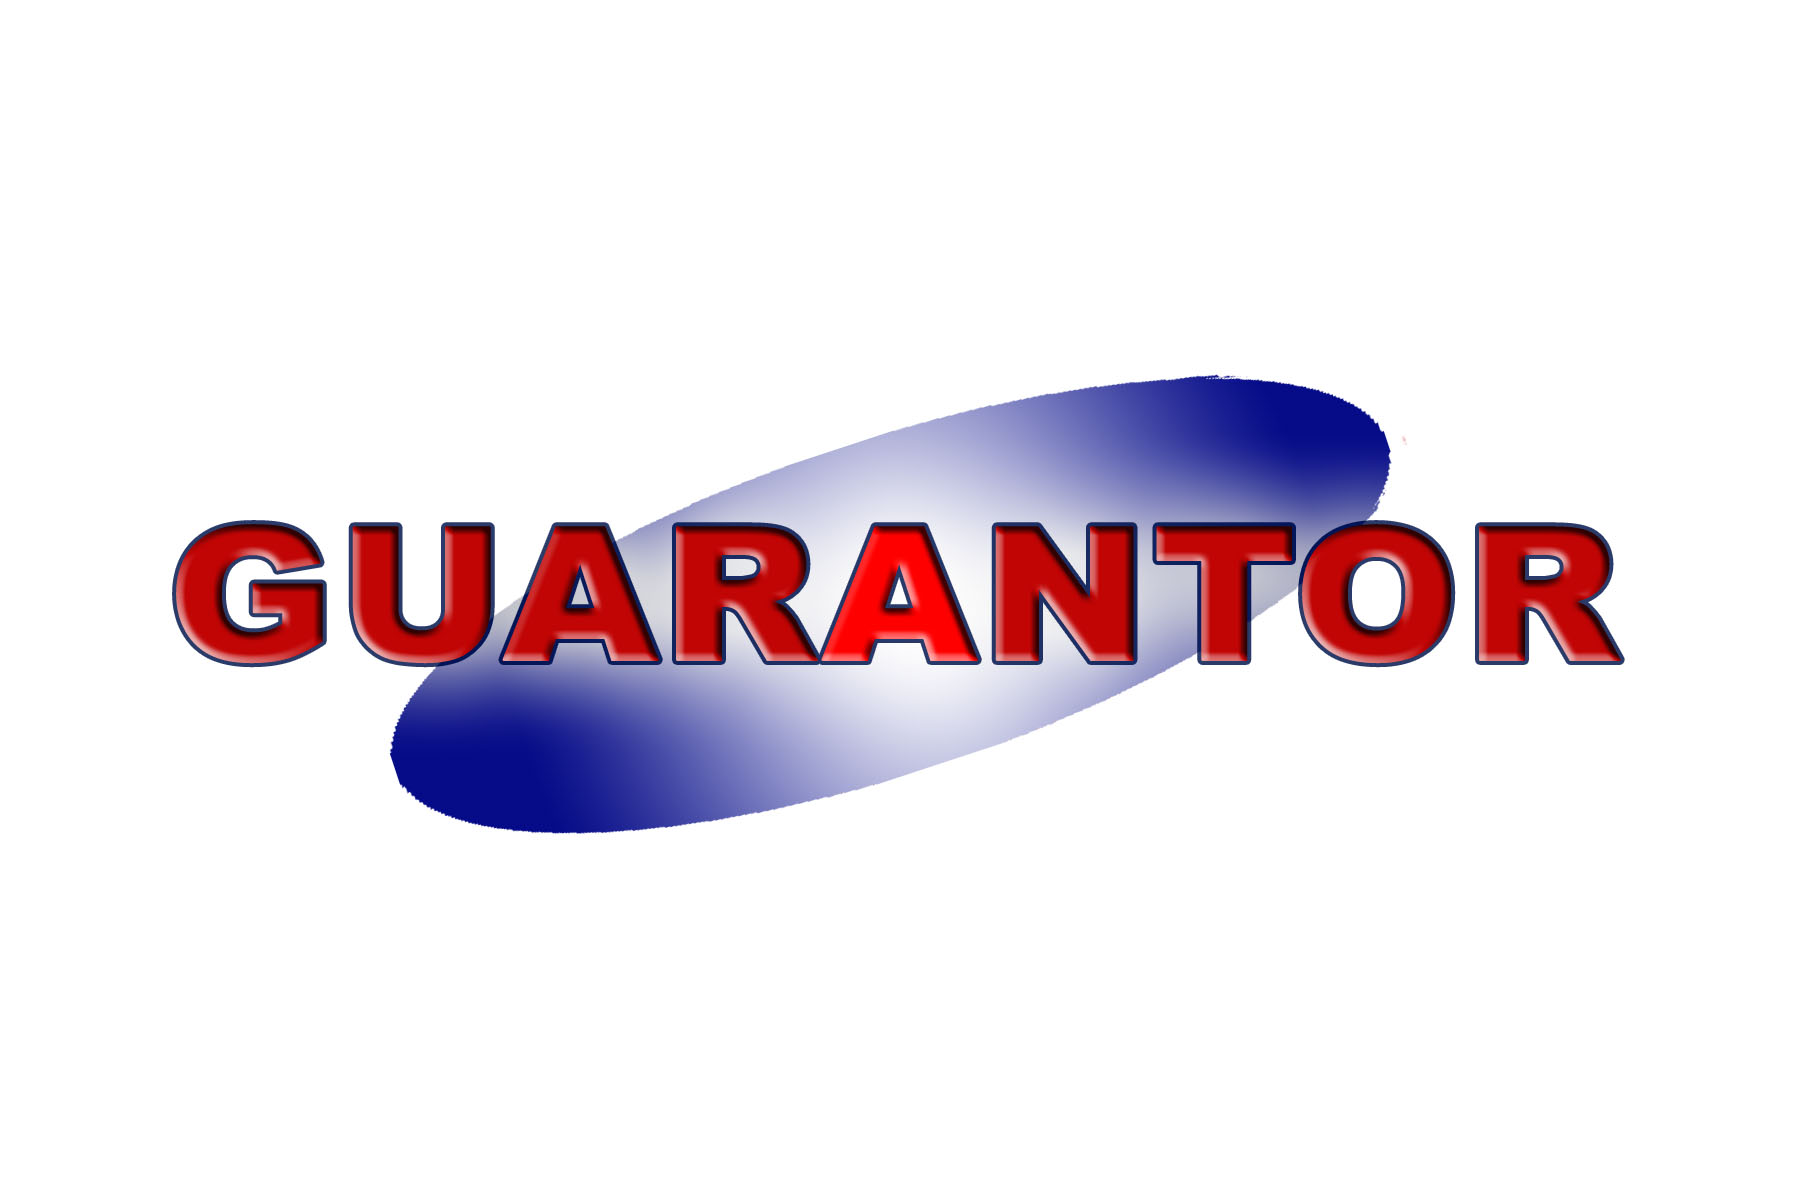 guarantor.com